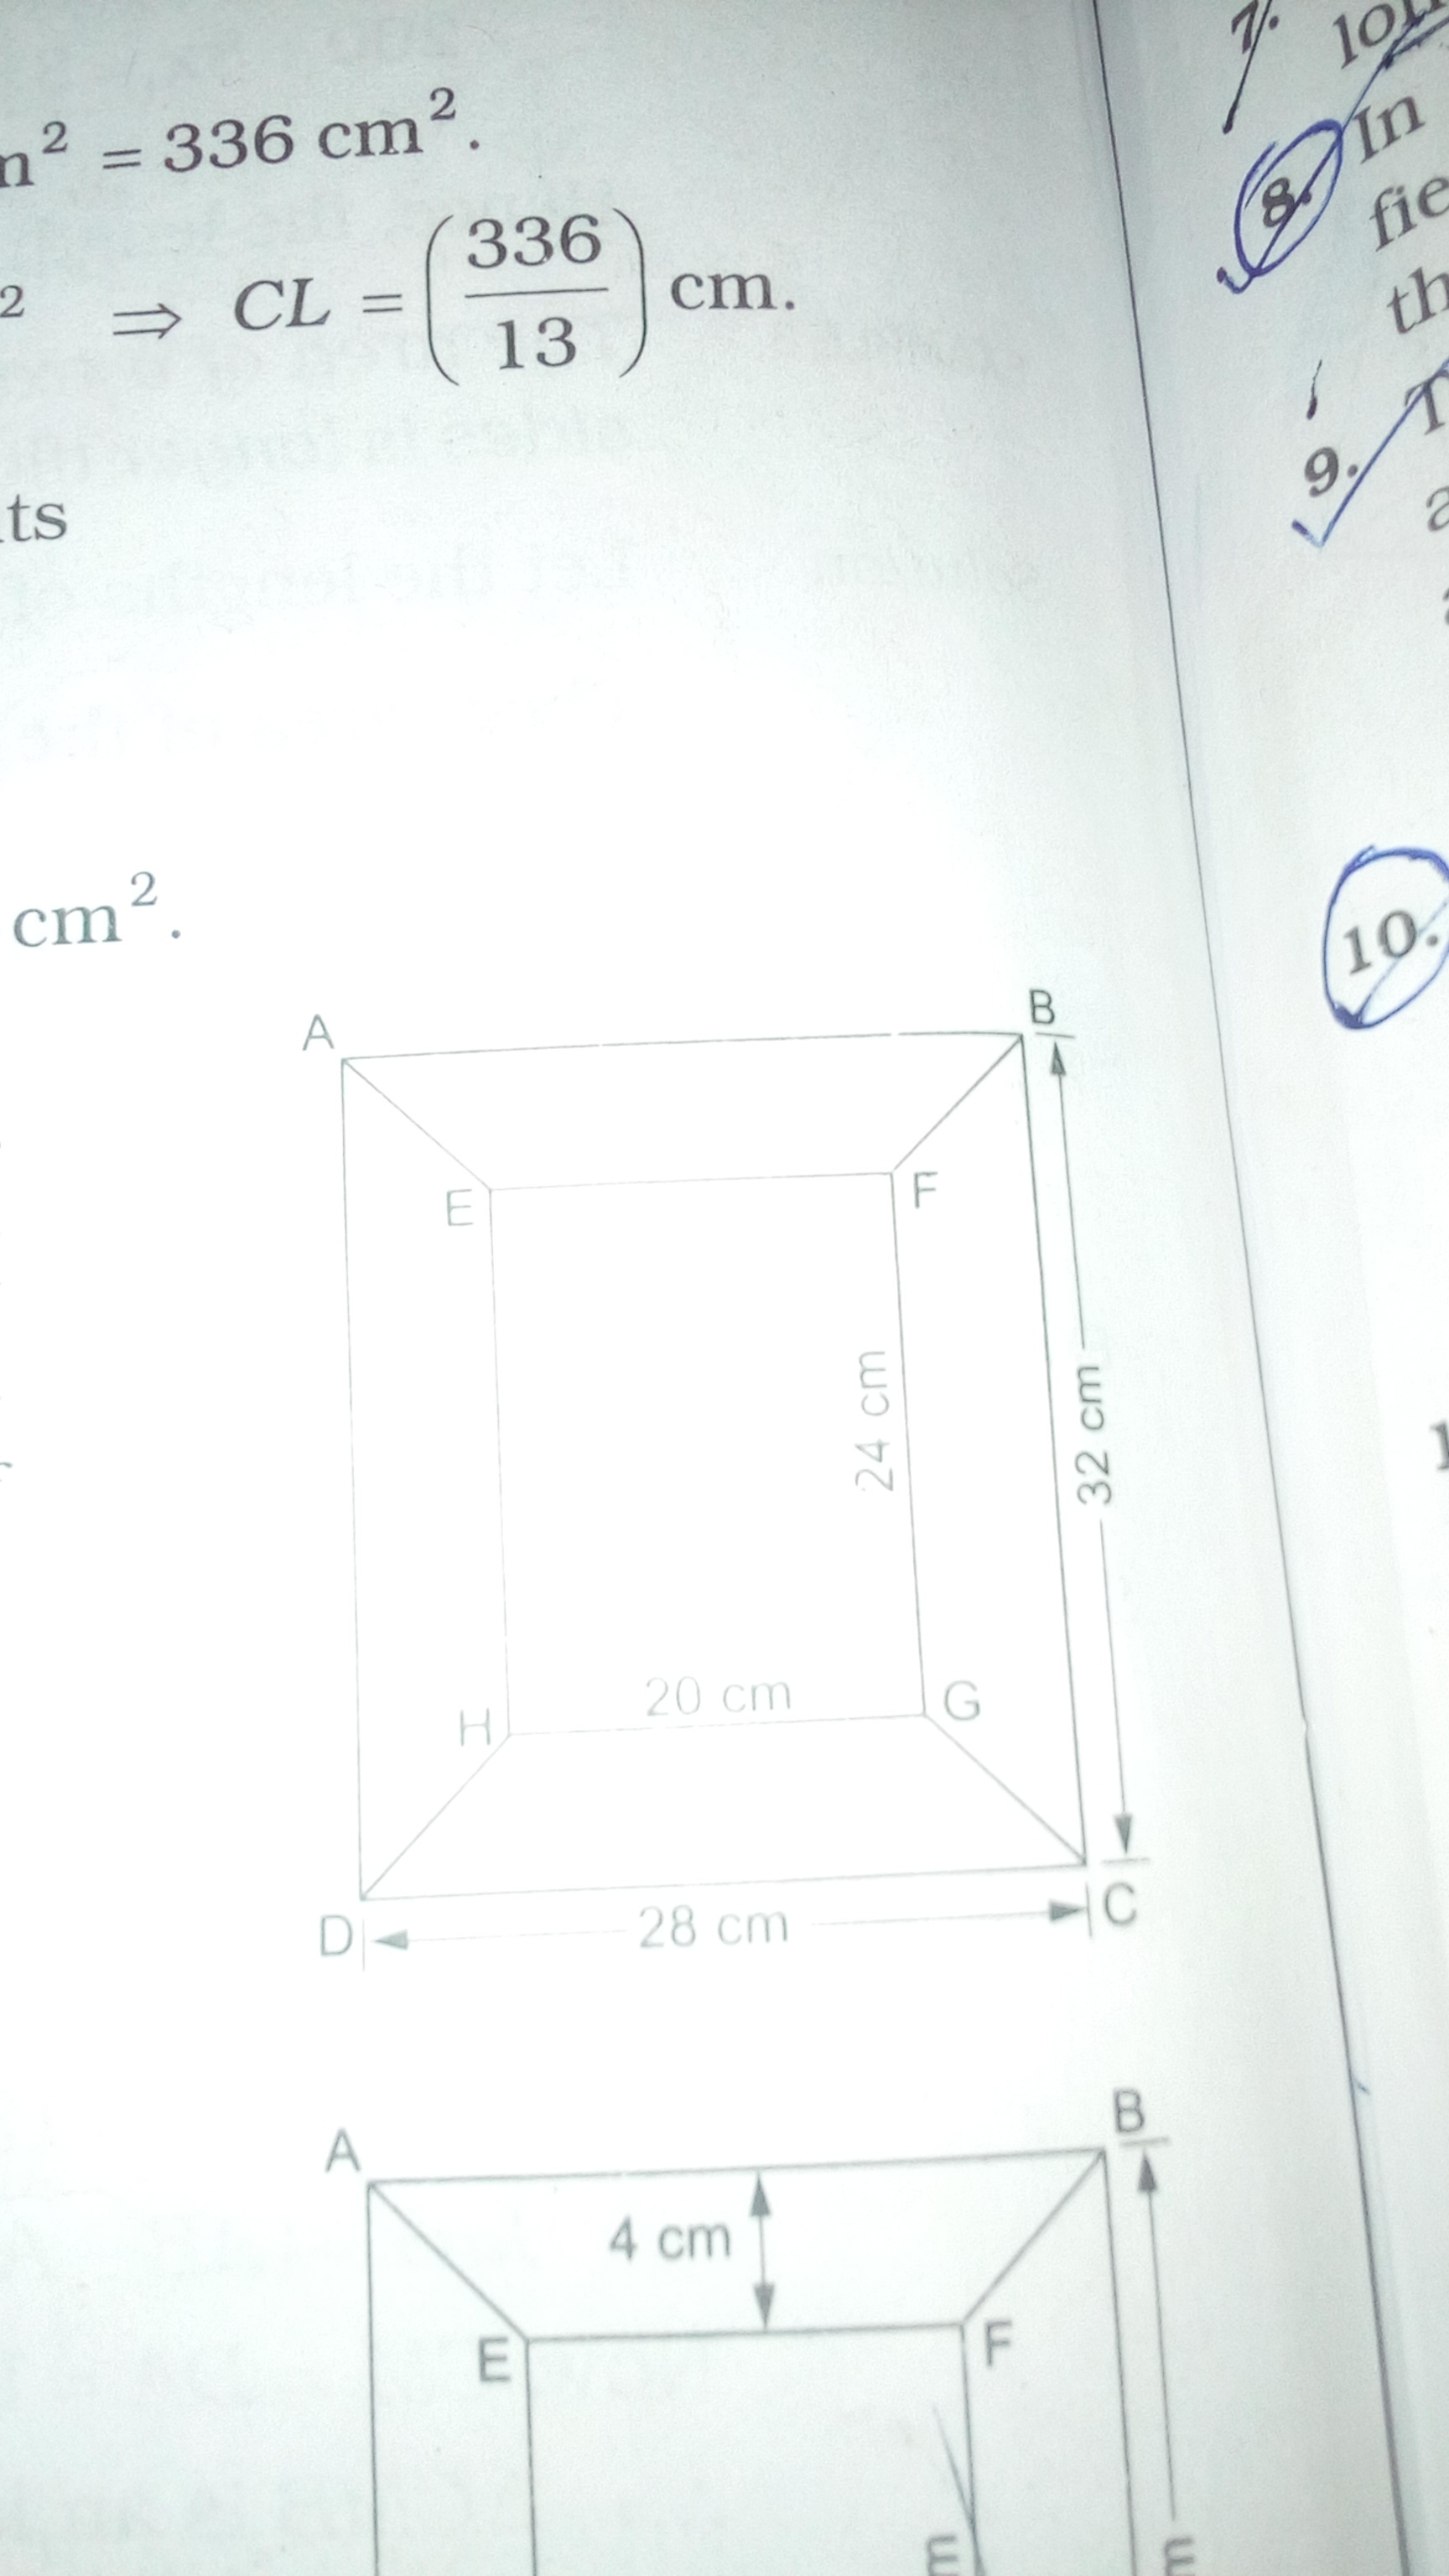 the adjacent figure shows the diagram of a picture frame